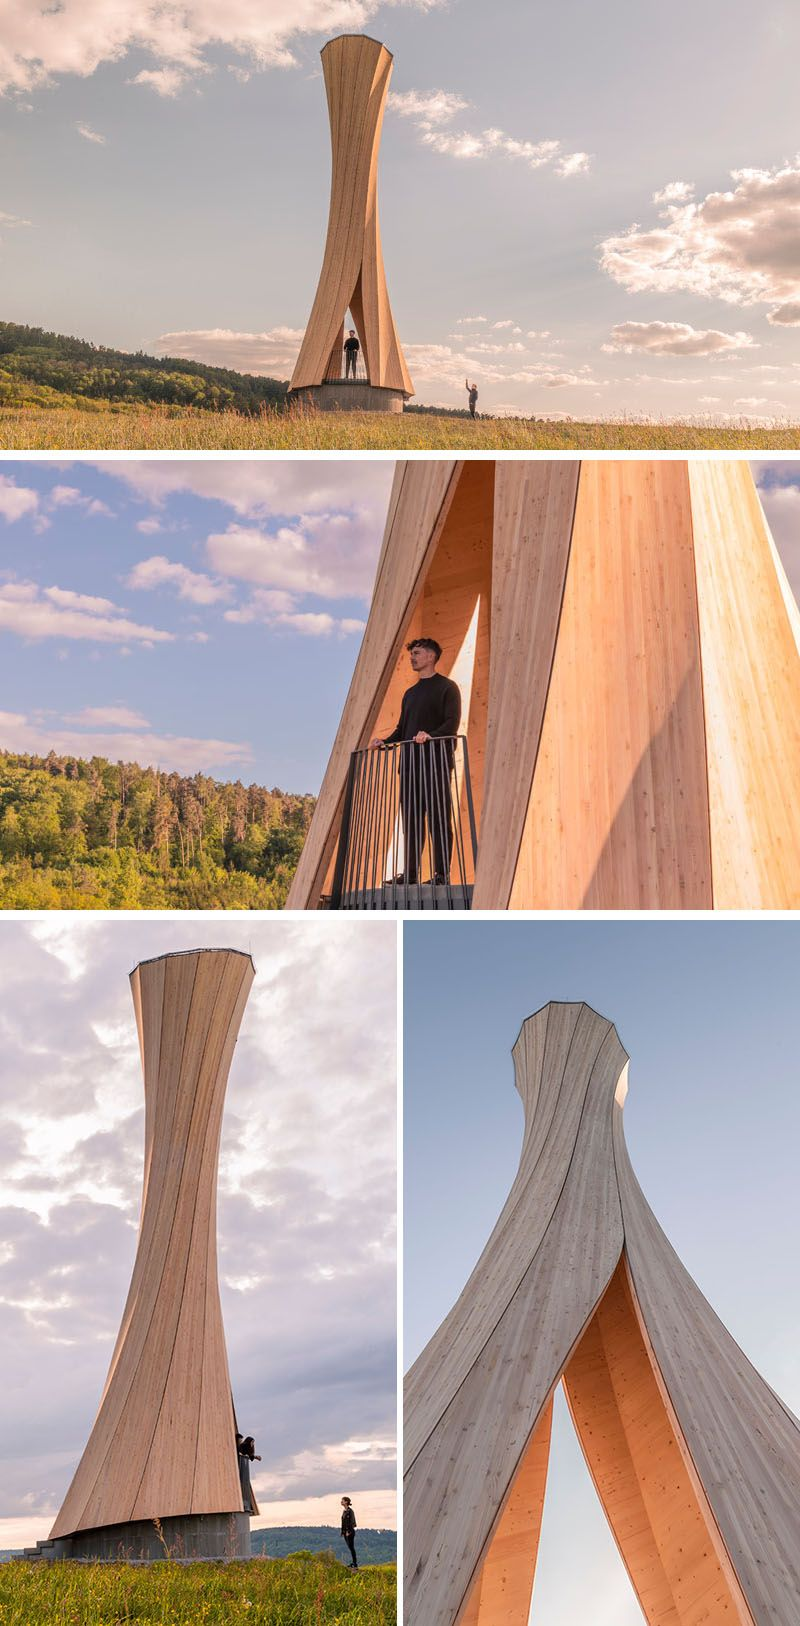 The Urbach Tower is the first wood structure made from self-shaped components, and it serves as a landmark building for the City of Urbach's contribution to the Remstal Gartenschau 2019. #Architecture #Design #Sculpture